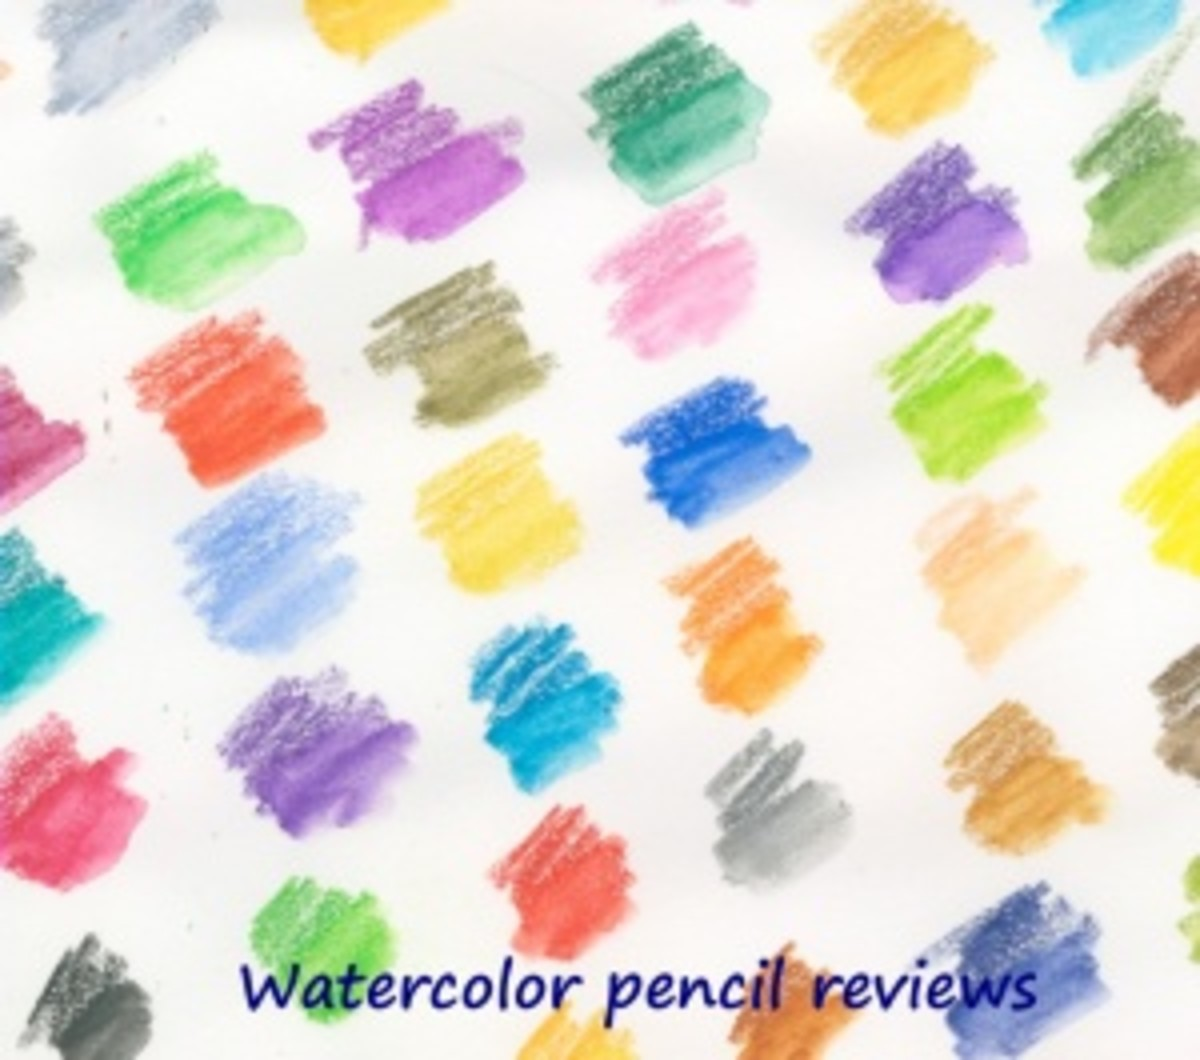 Watercolor Pencils - Reviews